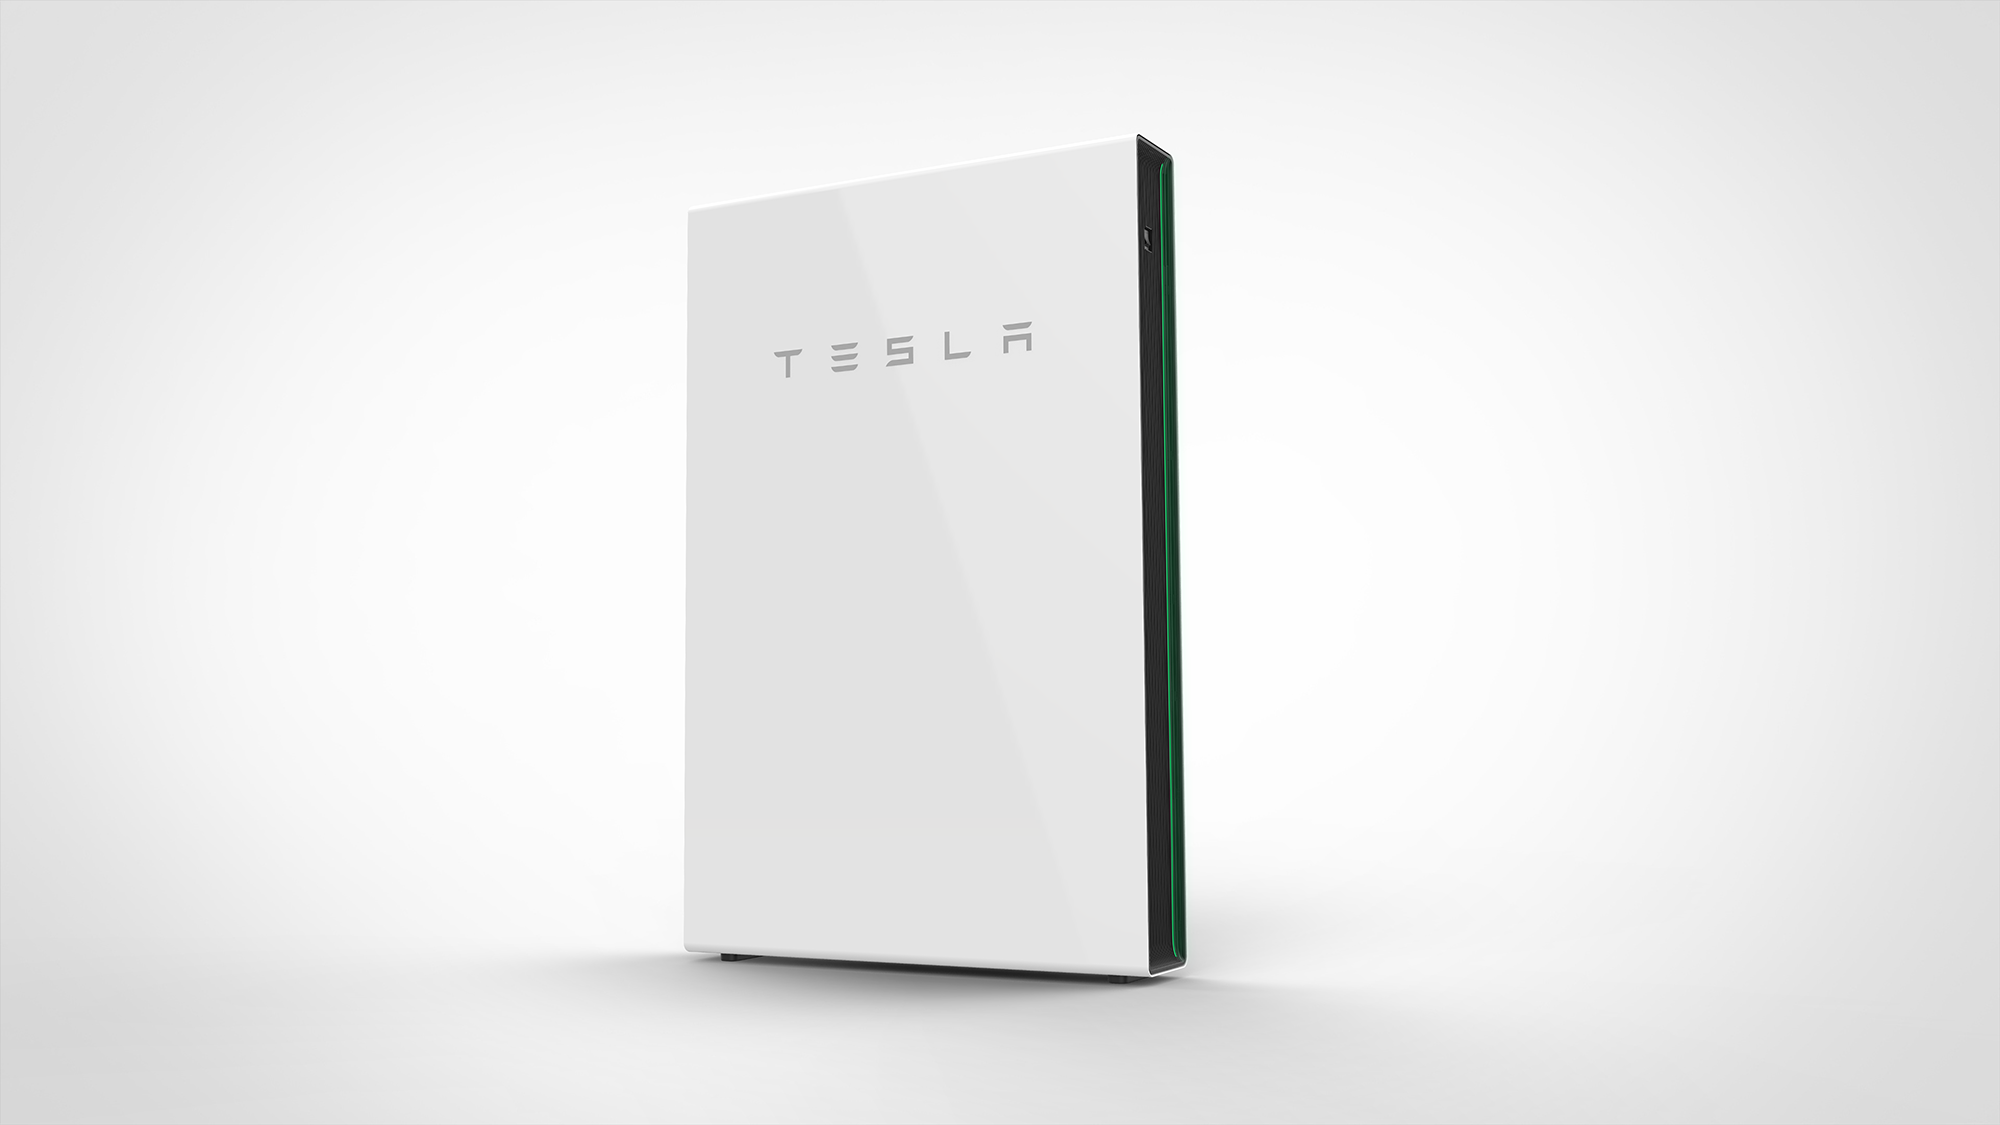 Press Kit Tesla Power Switch Is Pressed Digital Book Cricket Will Be Displayed Energy Products